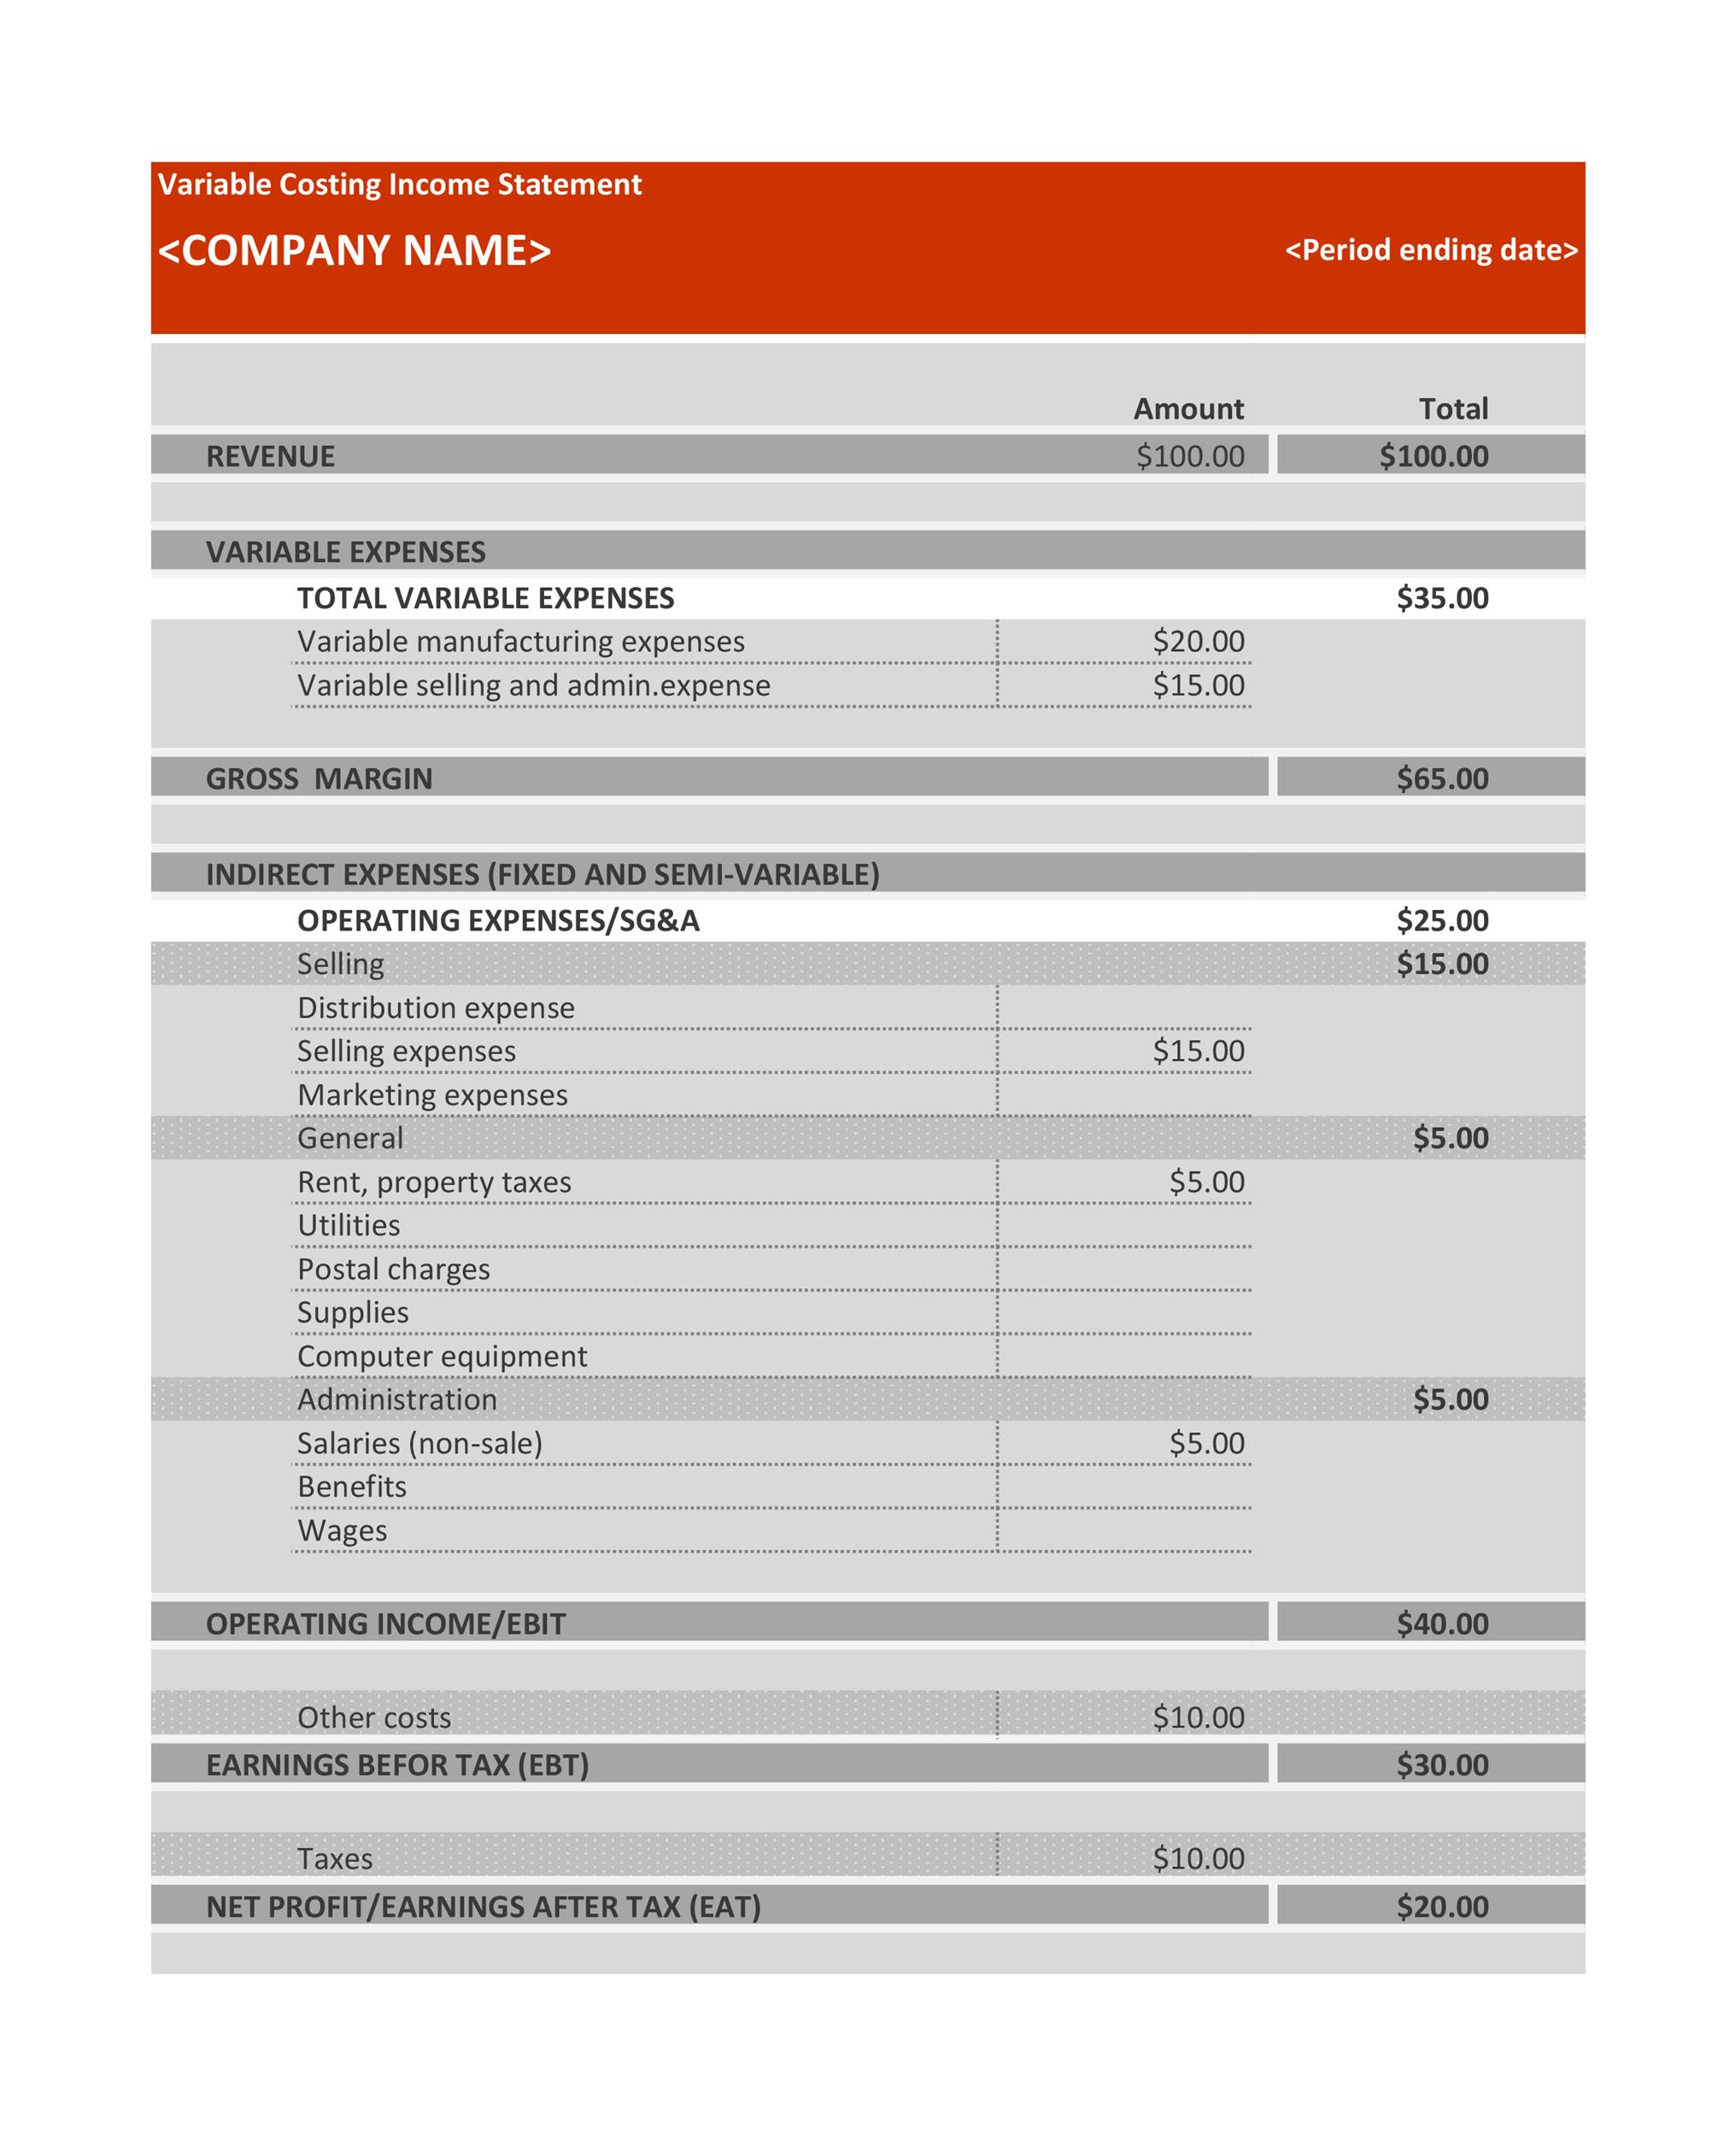 Free Variable Costing Income Statement